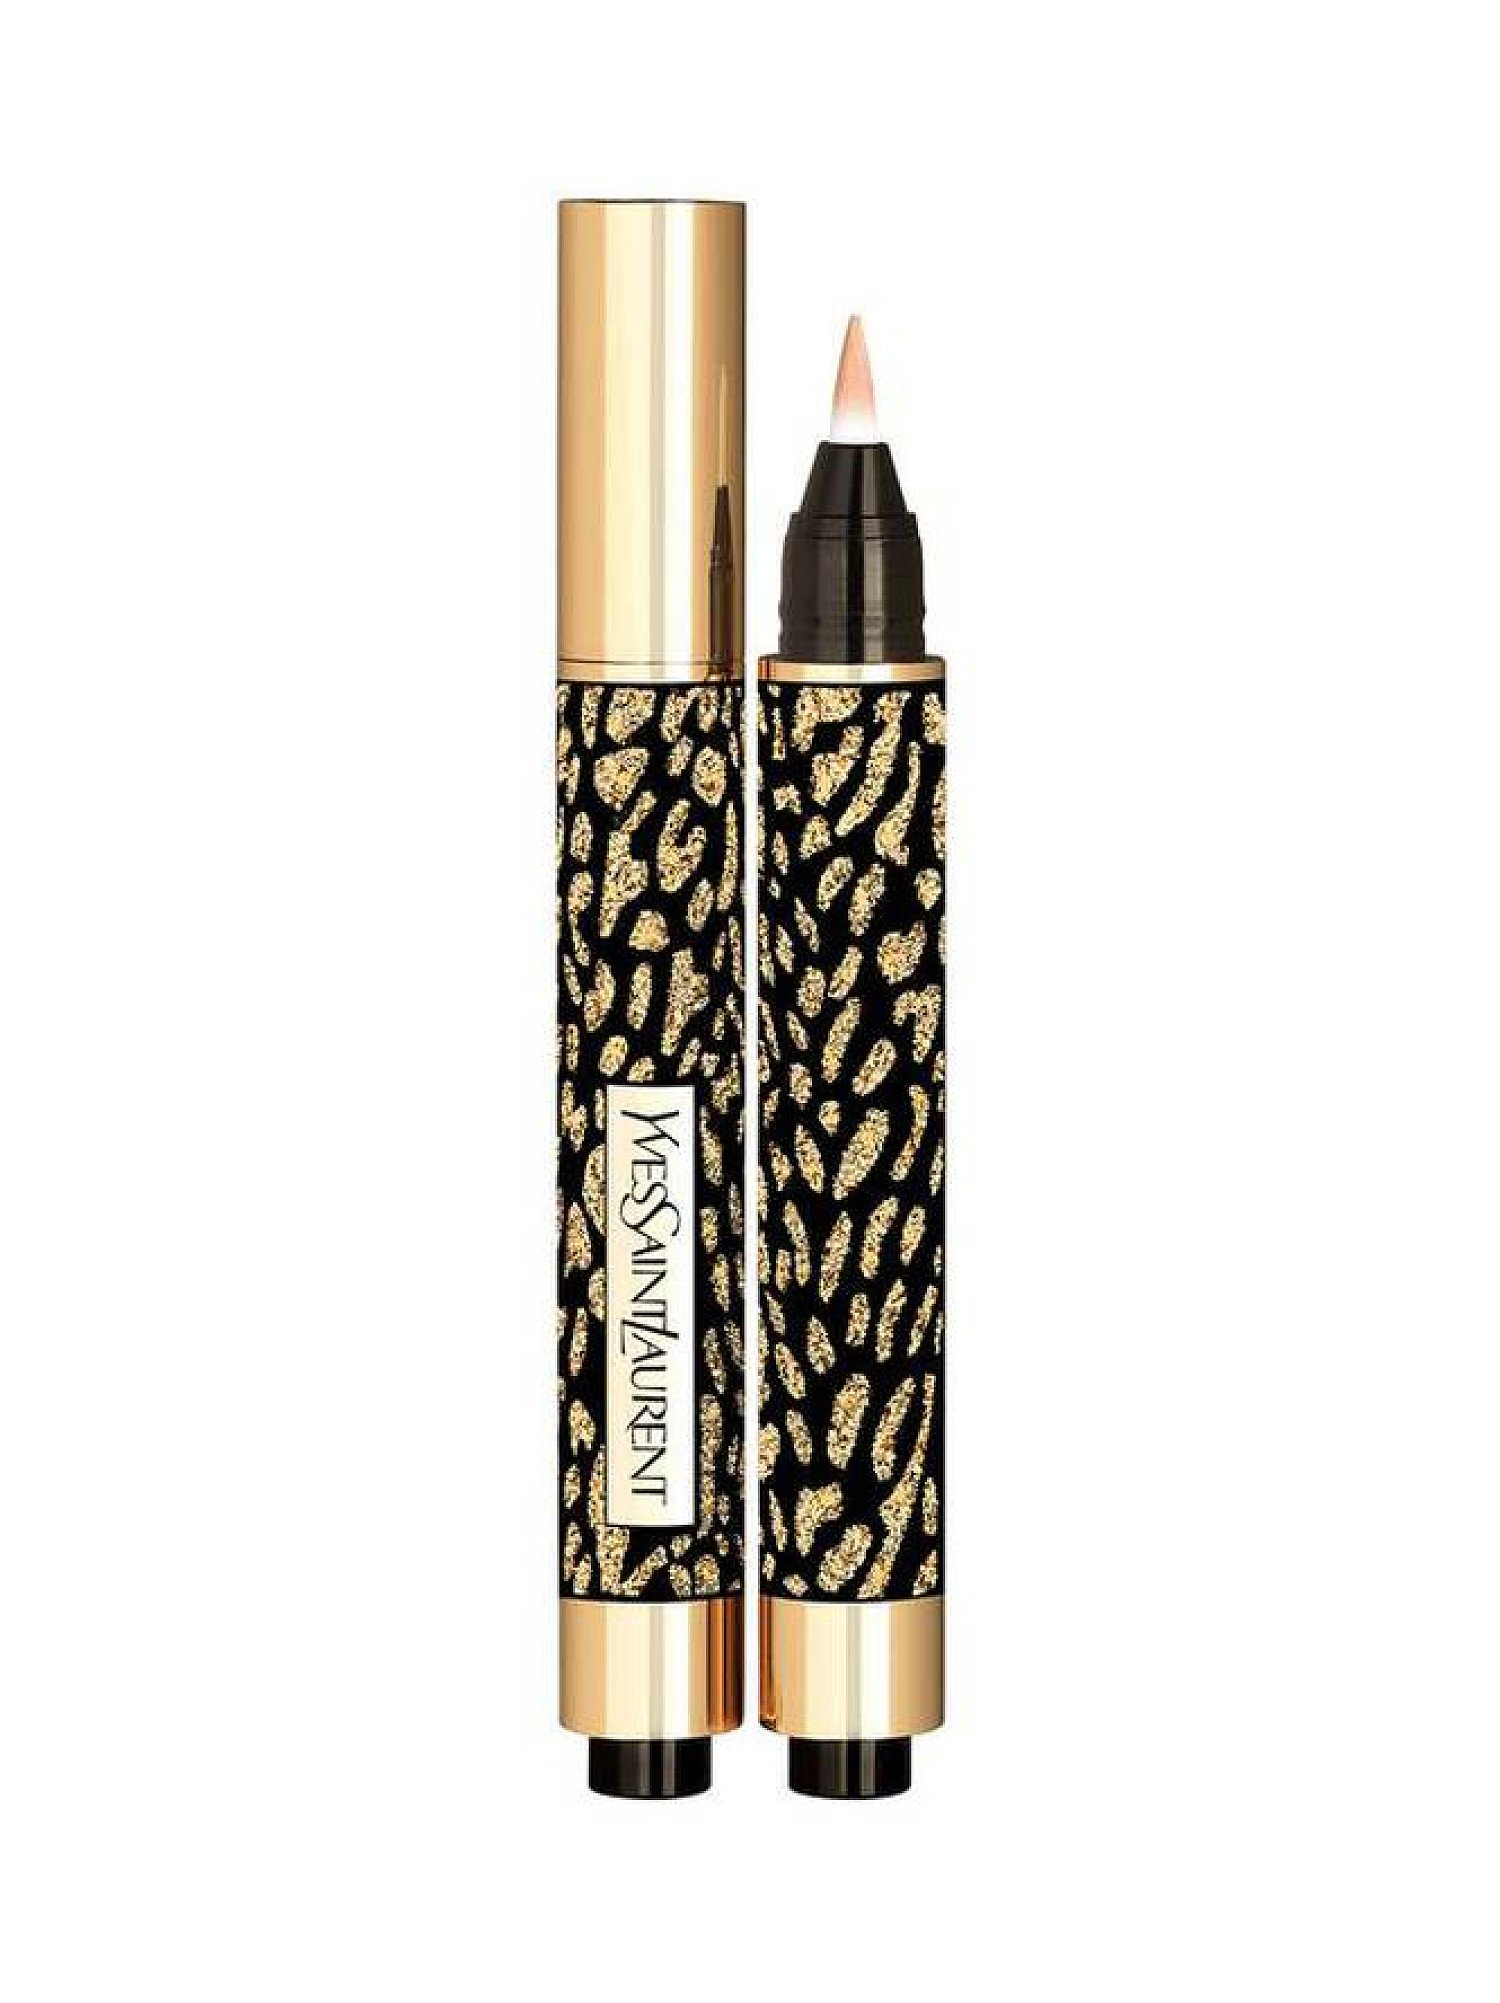 SALE - TOUCHE ÉCLAT ILLUMINATING PEN HOLIDAY COLLECTOR!